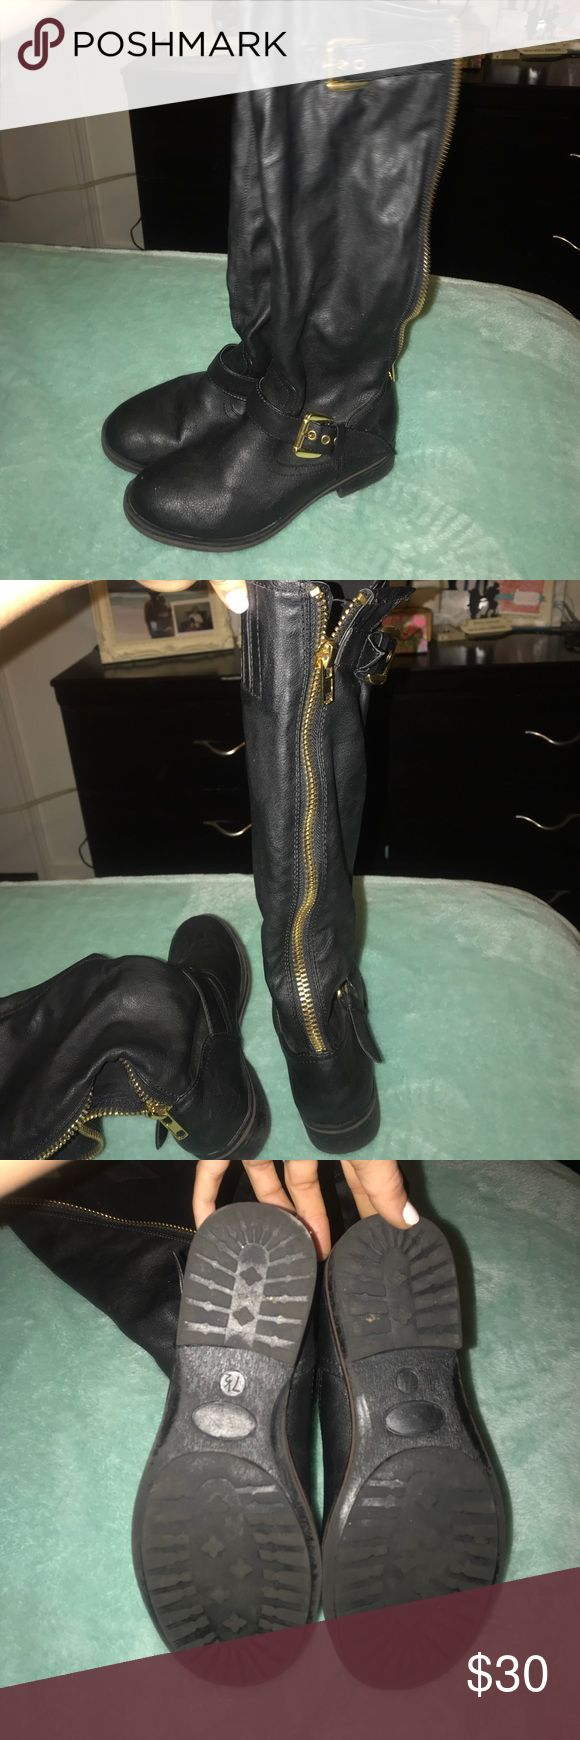 STEVE MADDEN BLACK BOOTS 🖤STEVE MADDEN Black boots, Gold Accents. Worn. Nothing wrong with them.  Definitely has a lot of life left in them. Make me an order. Steve Madden Shoes